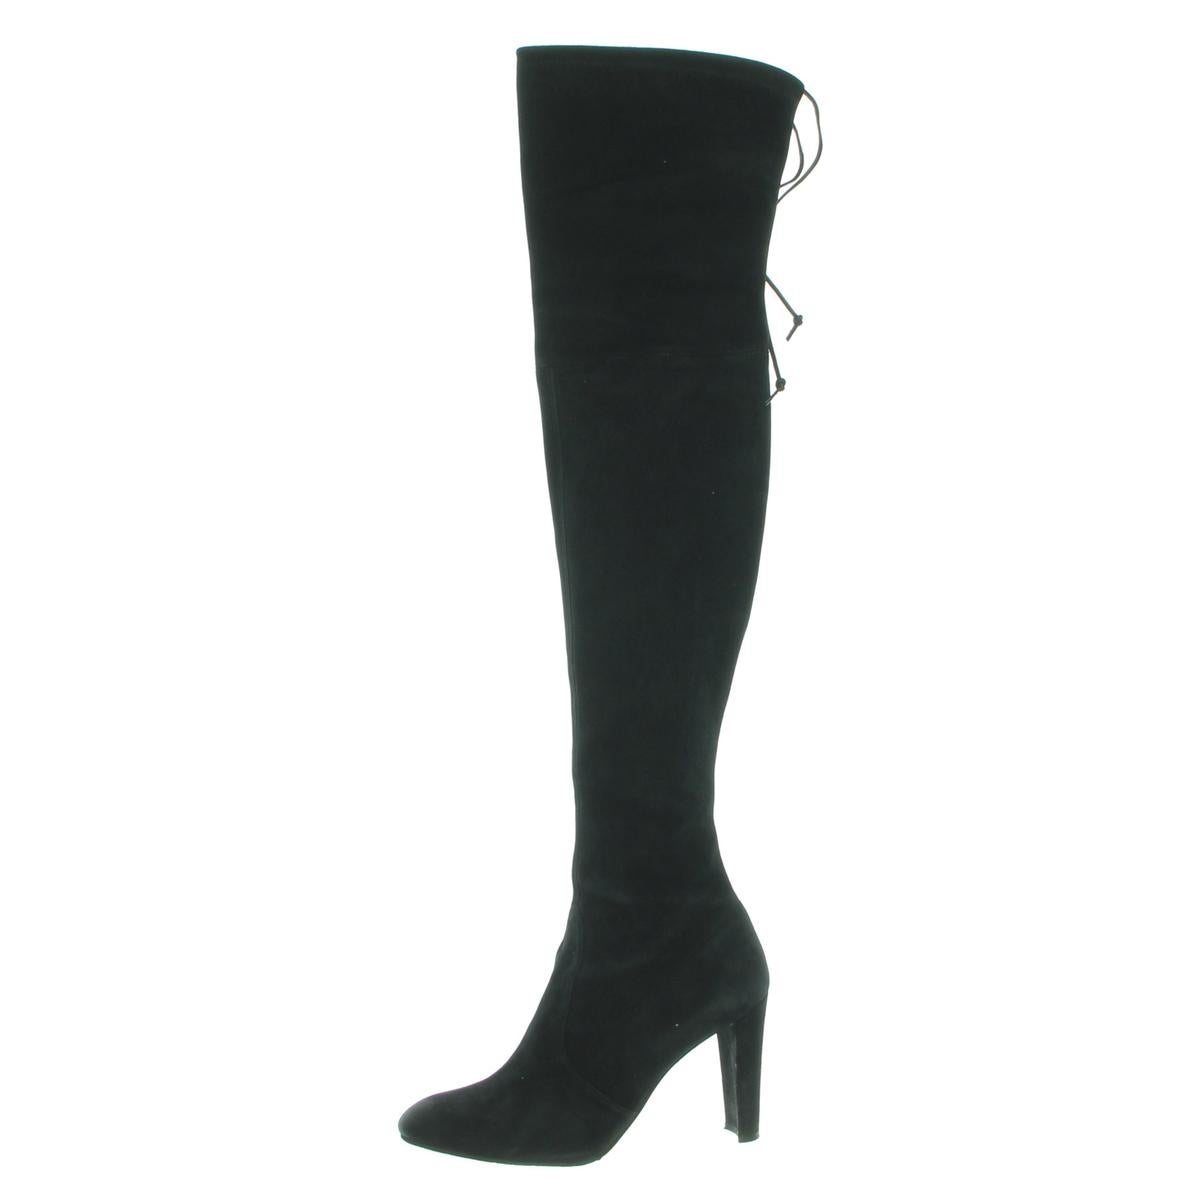 bcd7f96ade8 Shop Stuart Weitzman Womens Highland Over-The-Knee Boots Stretch Heels -  Free Shipping Today - Overstock - 24087725